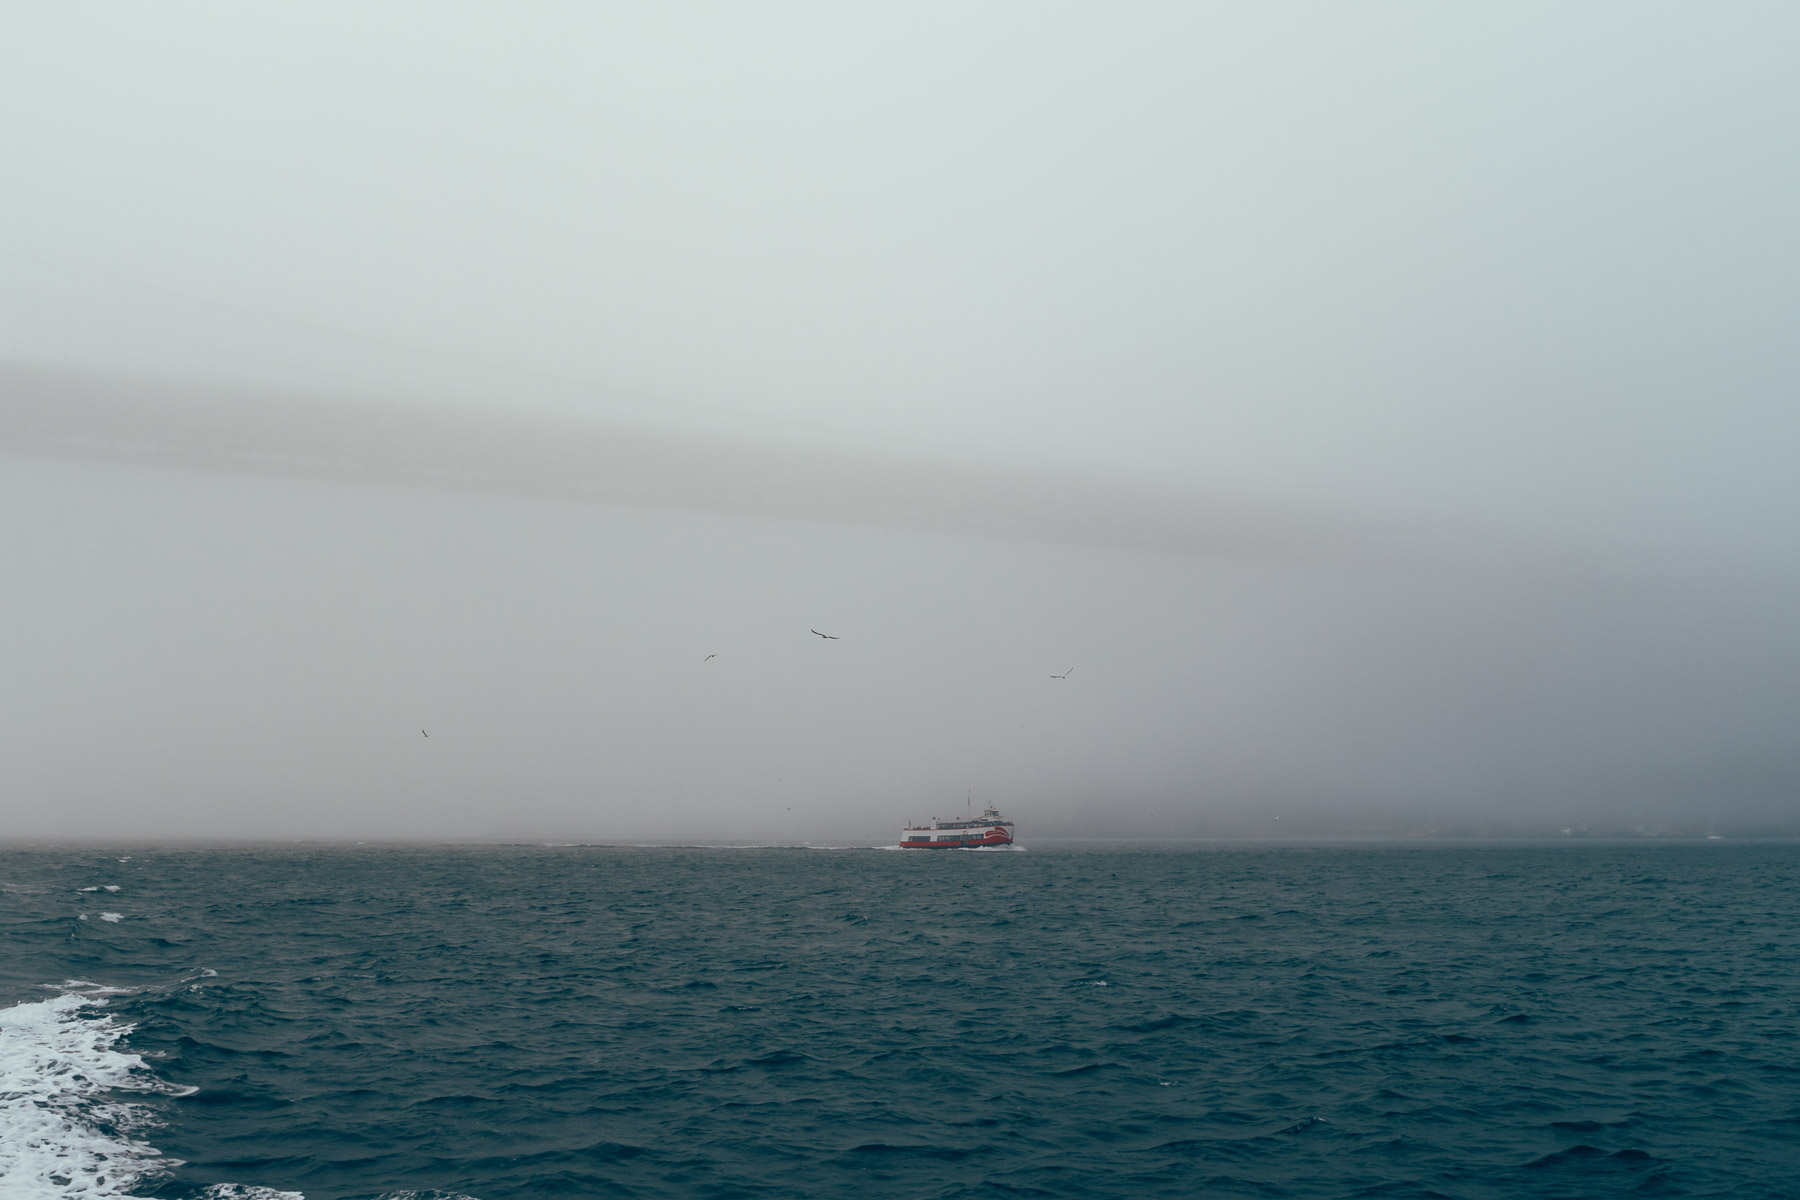 A Red and White Fleet boat carrying sightseers sails under the ominous fog-bound Golden Gate Bridge in San Francisco Bay.